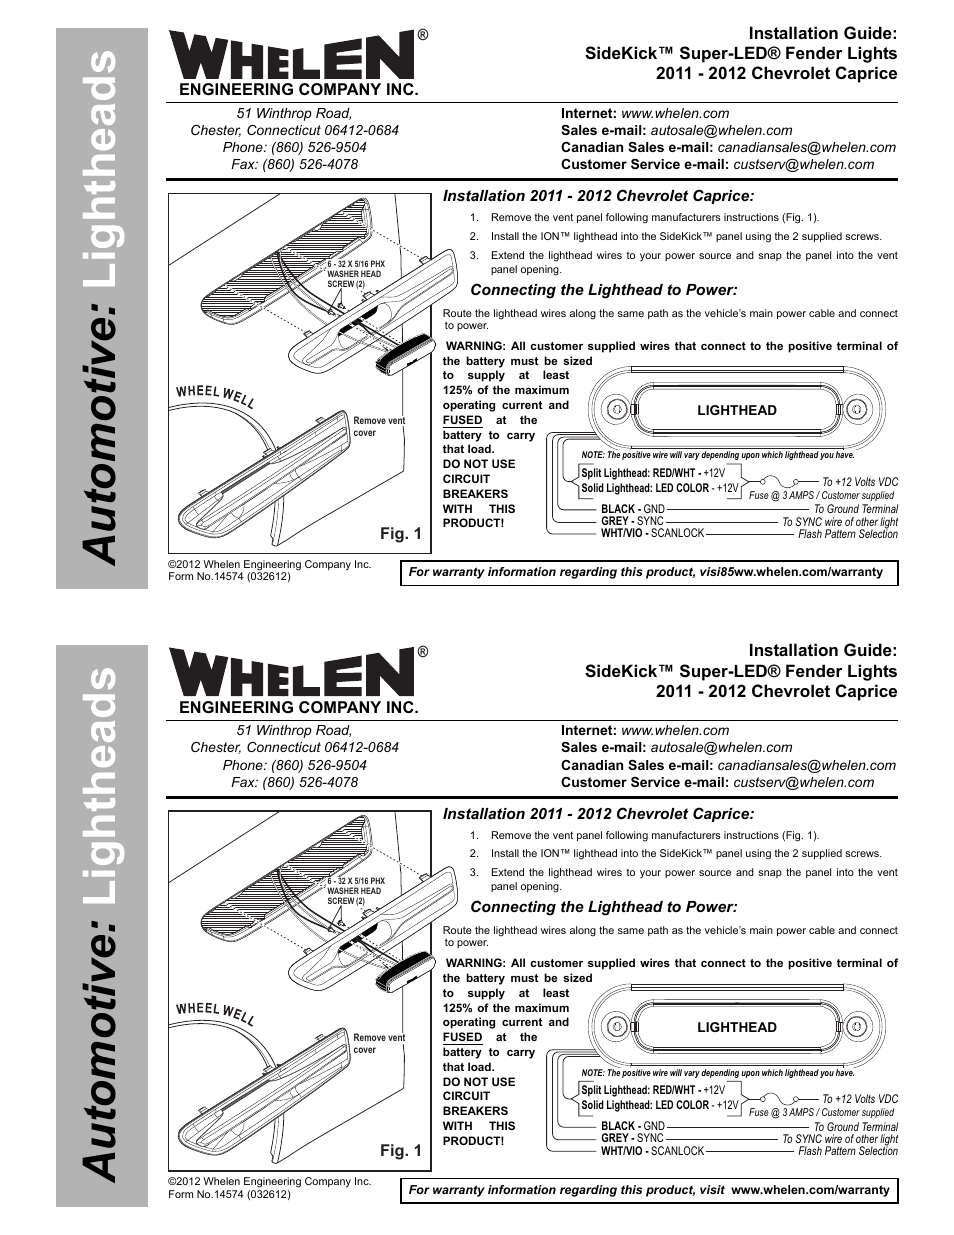 whelen-sk02jj-page1 Whelen Strobe Wiring Diagram on led lightbar wiring diagram, whelen lights diagram, typical rv wiring diagram, whelen lightbar wiring-diagram, strobe light diagram, 911ep wiring diagram, whelen wiring we can, light bar wiring diagram, galls wiring diagram,